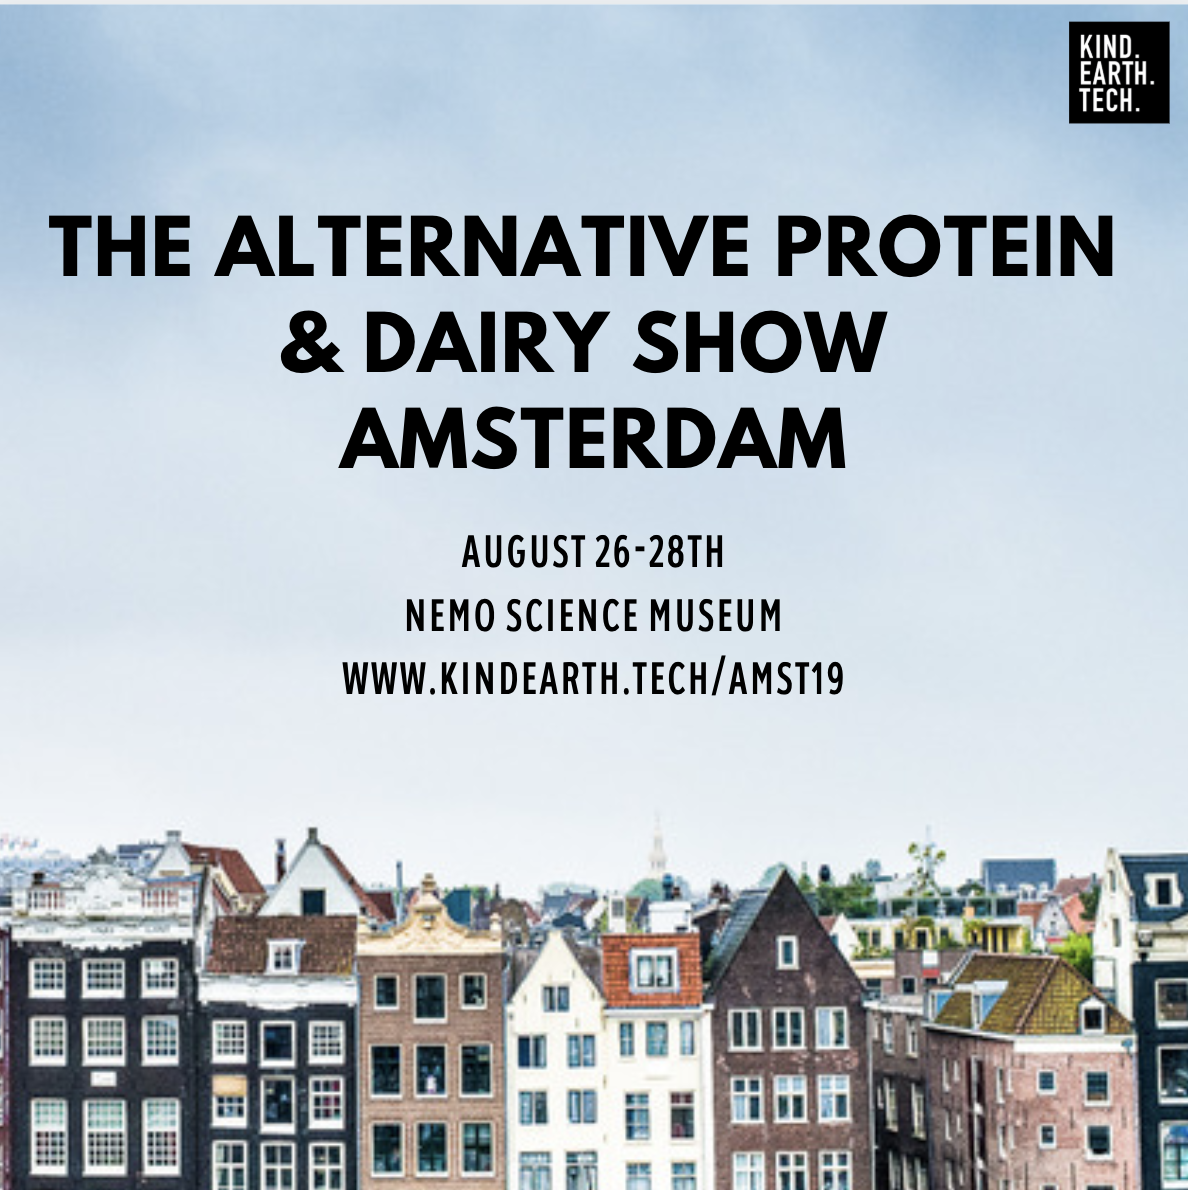 The alternative protein and dairy show Amsterdam